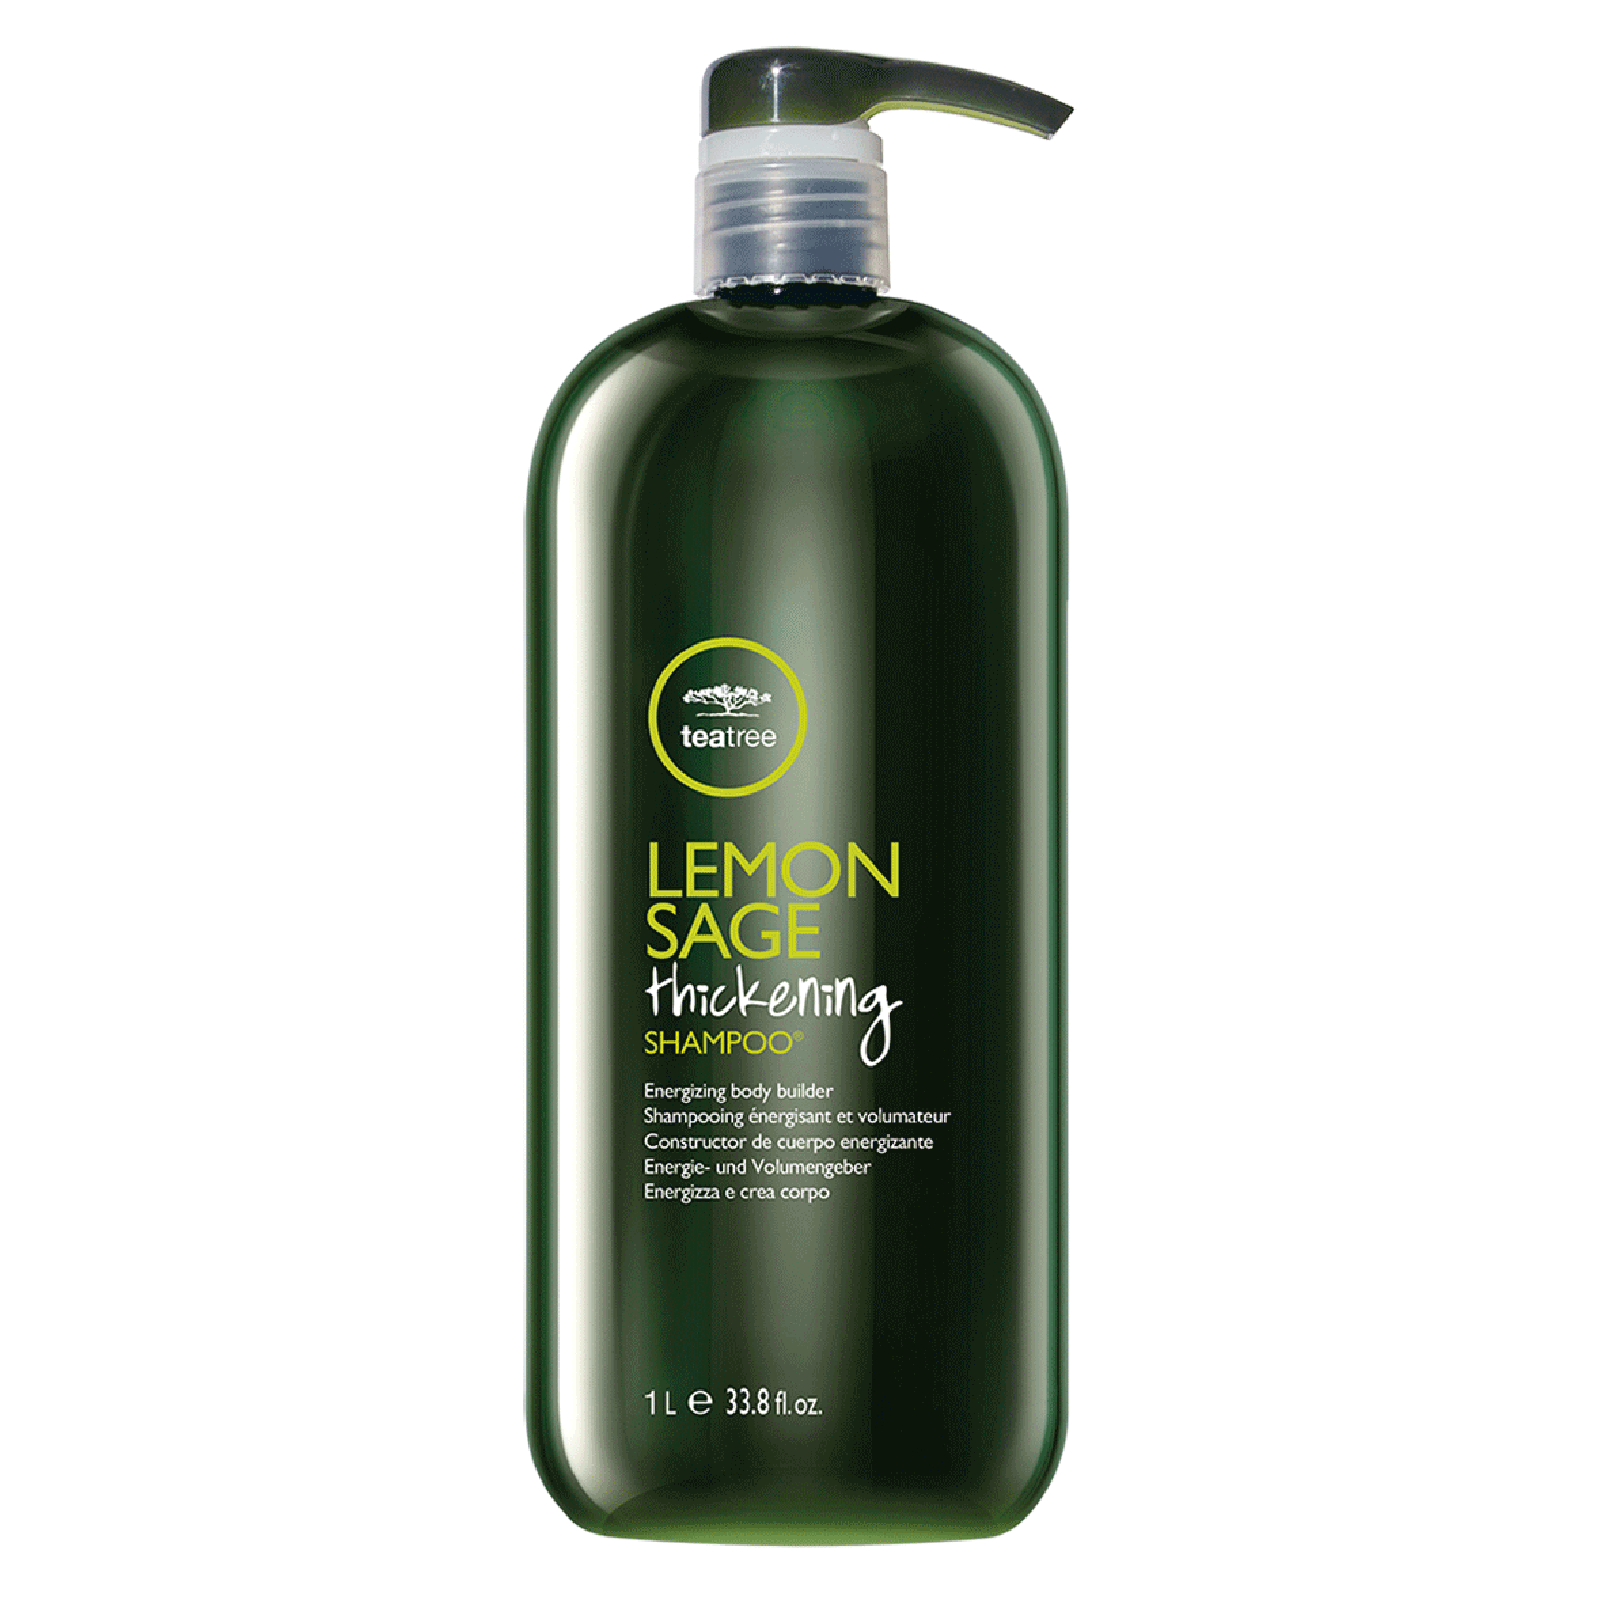 Tea Tree Lemon Sage - Thickening Shampoo